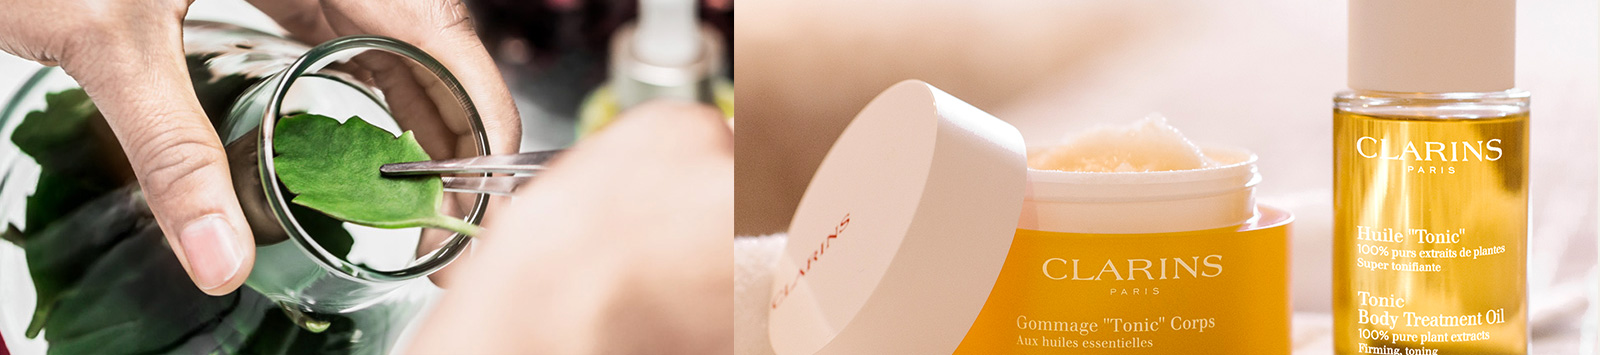 Person selecting a leaf / Clarins Tonic Body Polisher and Treatment Oil